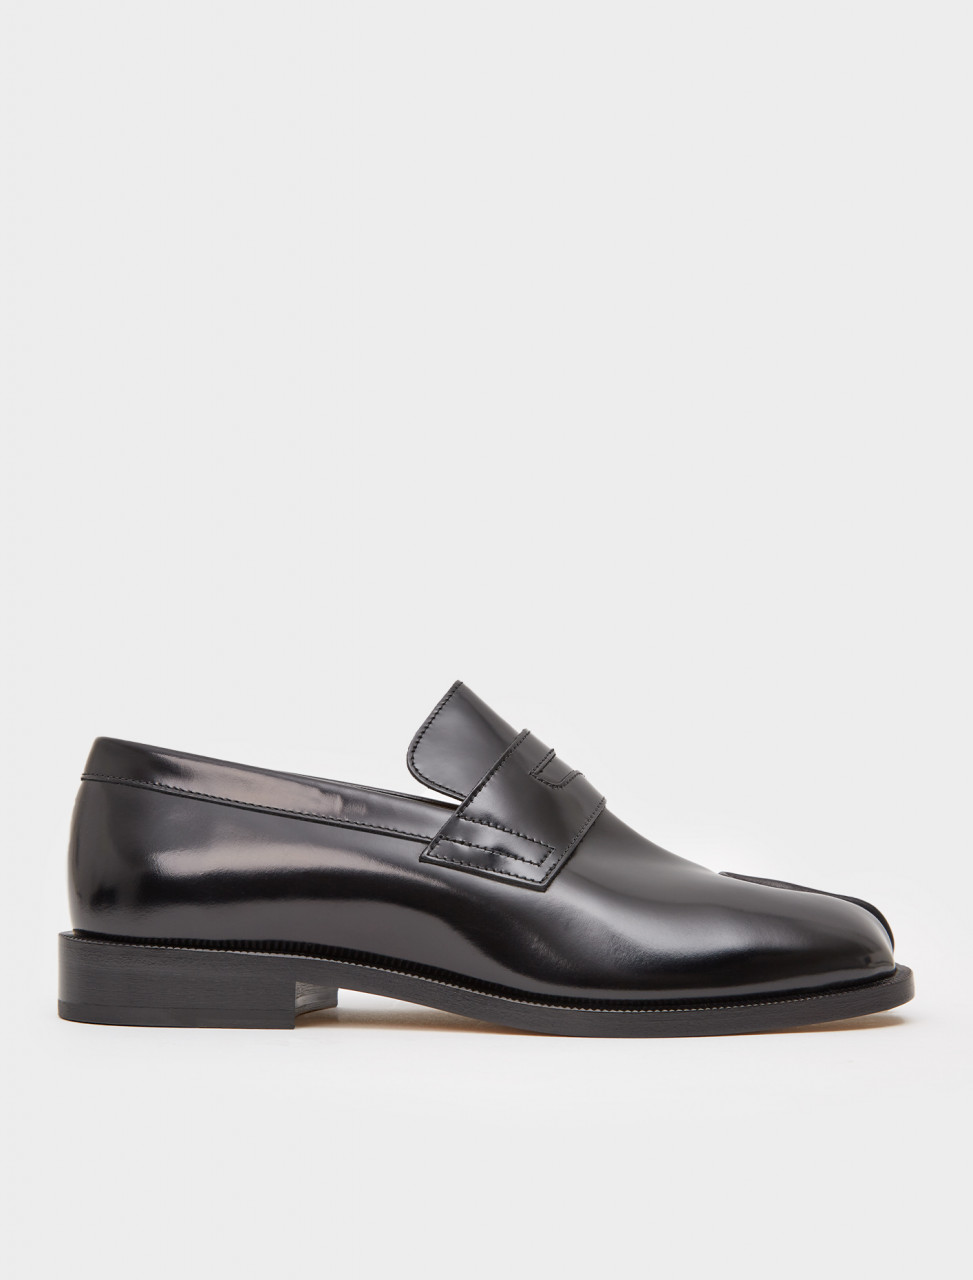 256-S57WR0056-P3116-T8013 MAISON MARGIELA TABI LEATHER LOAFERS BLACK